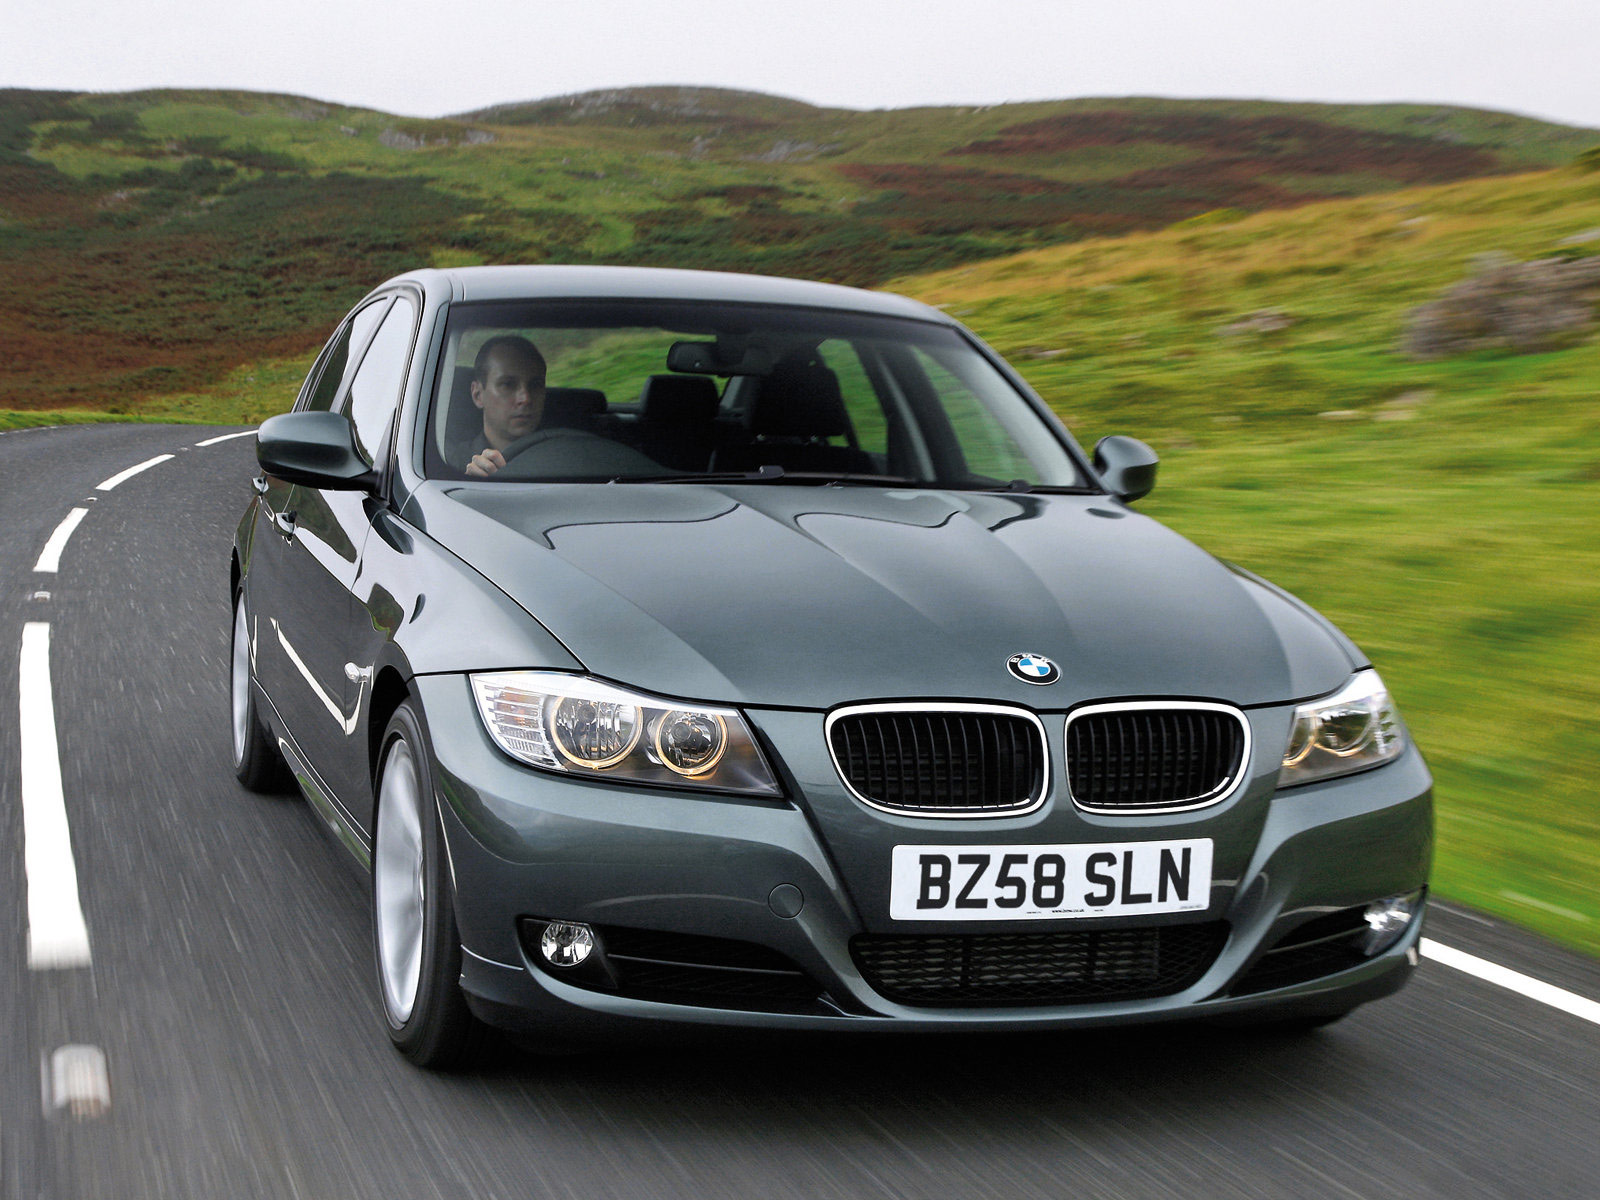 2009 bmw 3 series uk version review and pictures. Black Bedroom Furniture Sets. Home Design Ideas